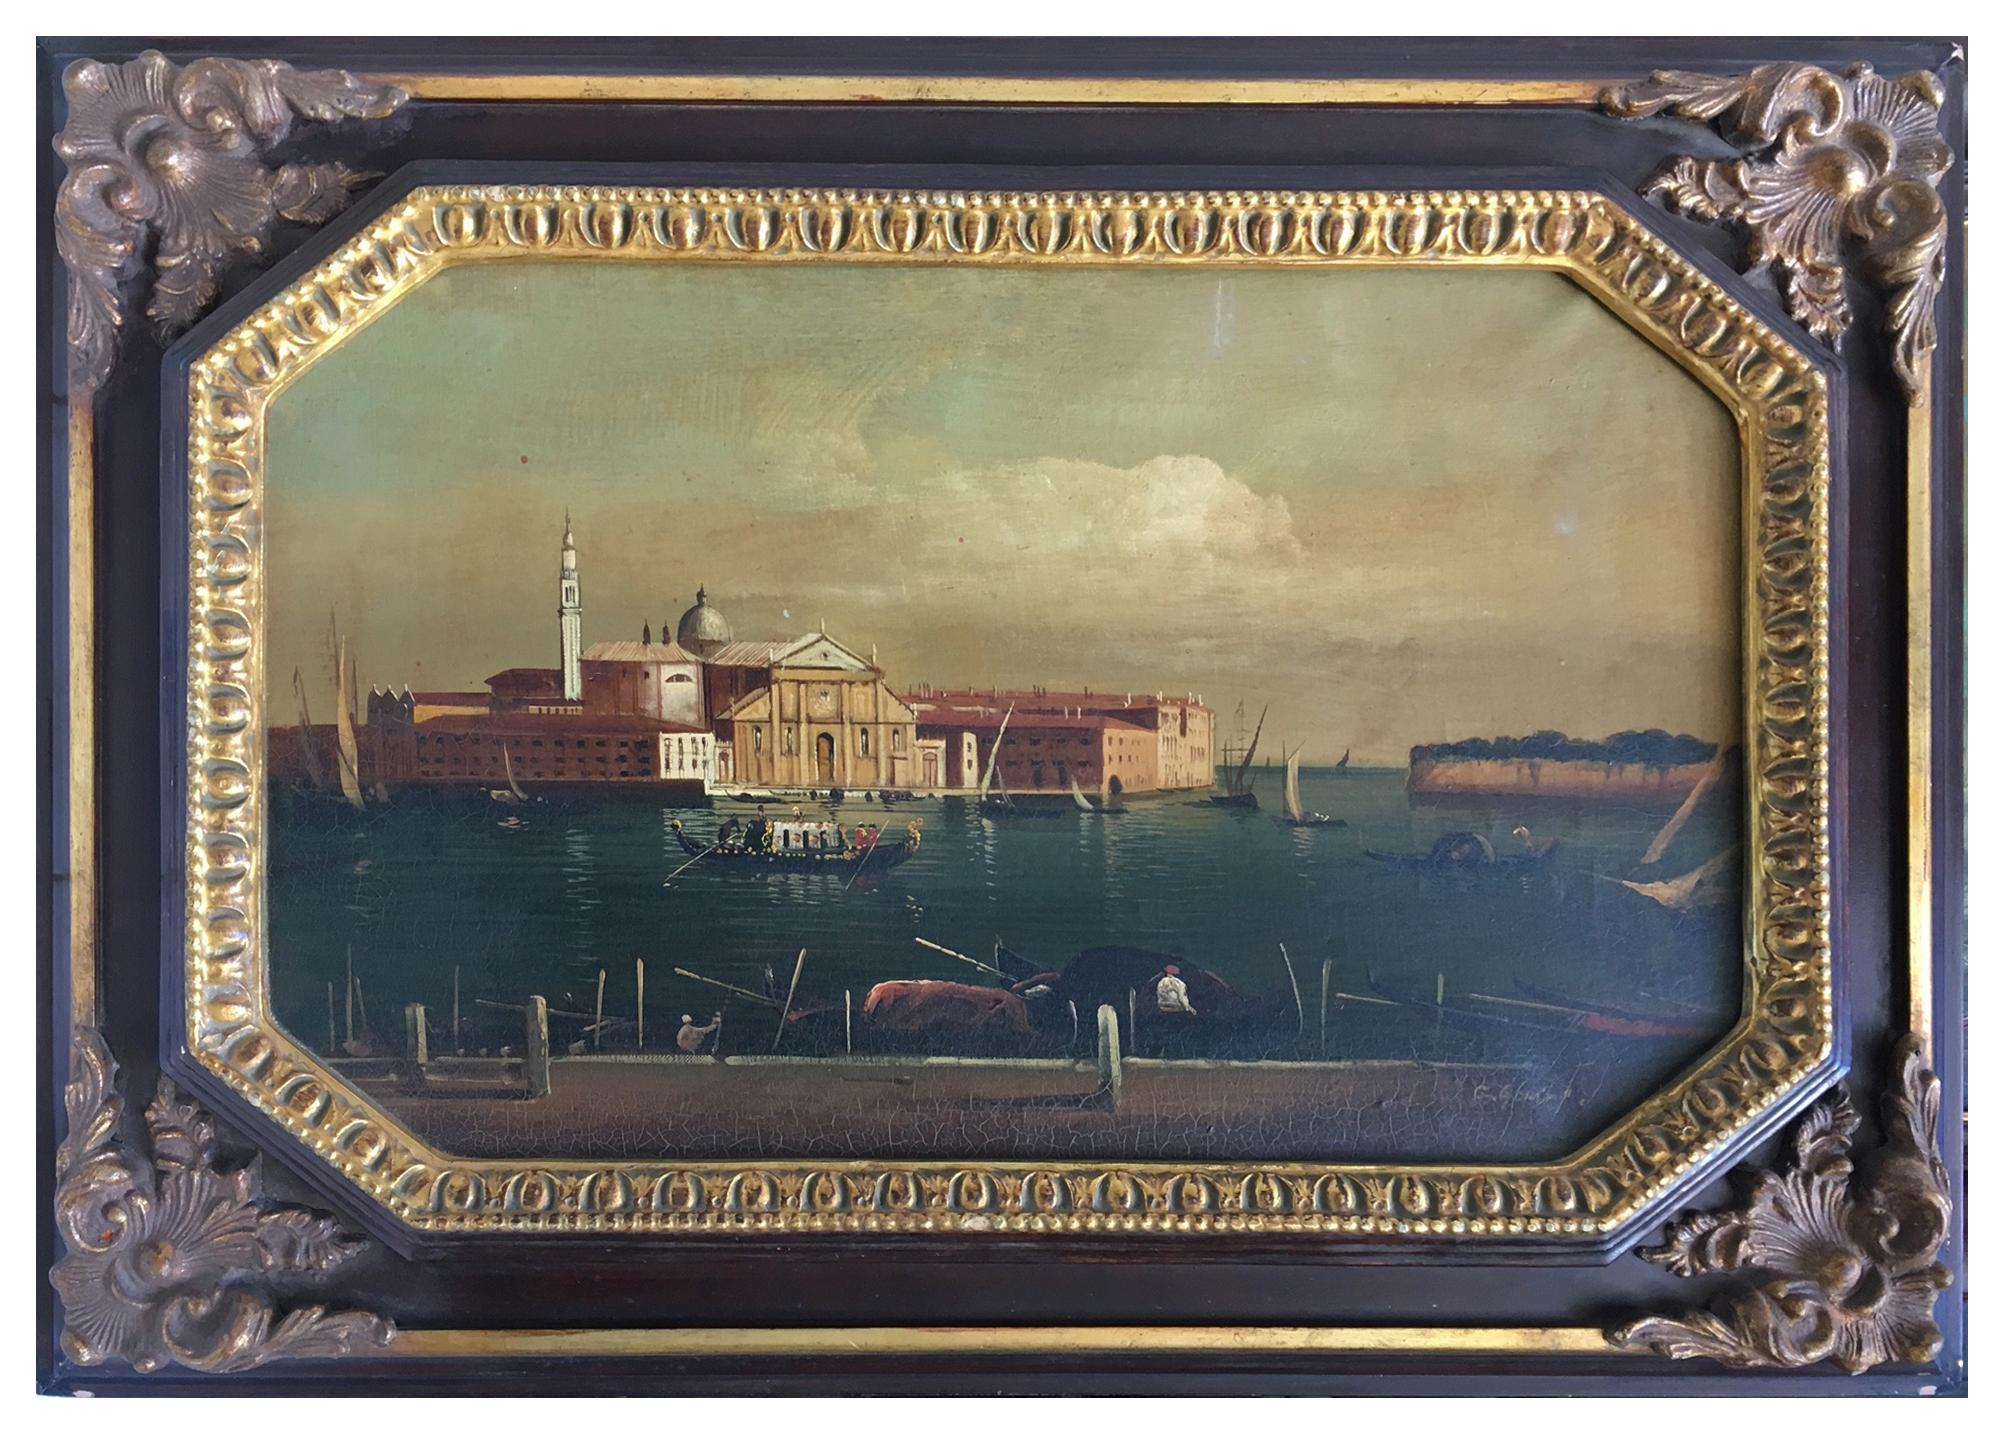 VENICE - In the Manner of Canaletto - Italian Landscape Oil on Canvas Painting